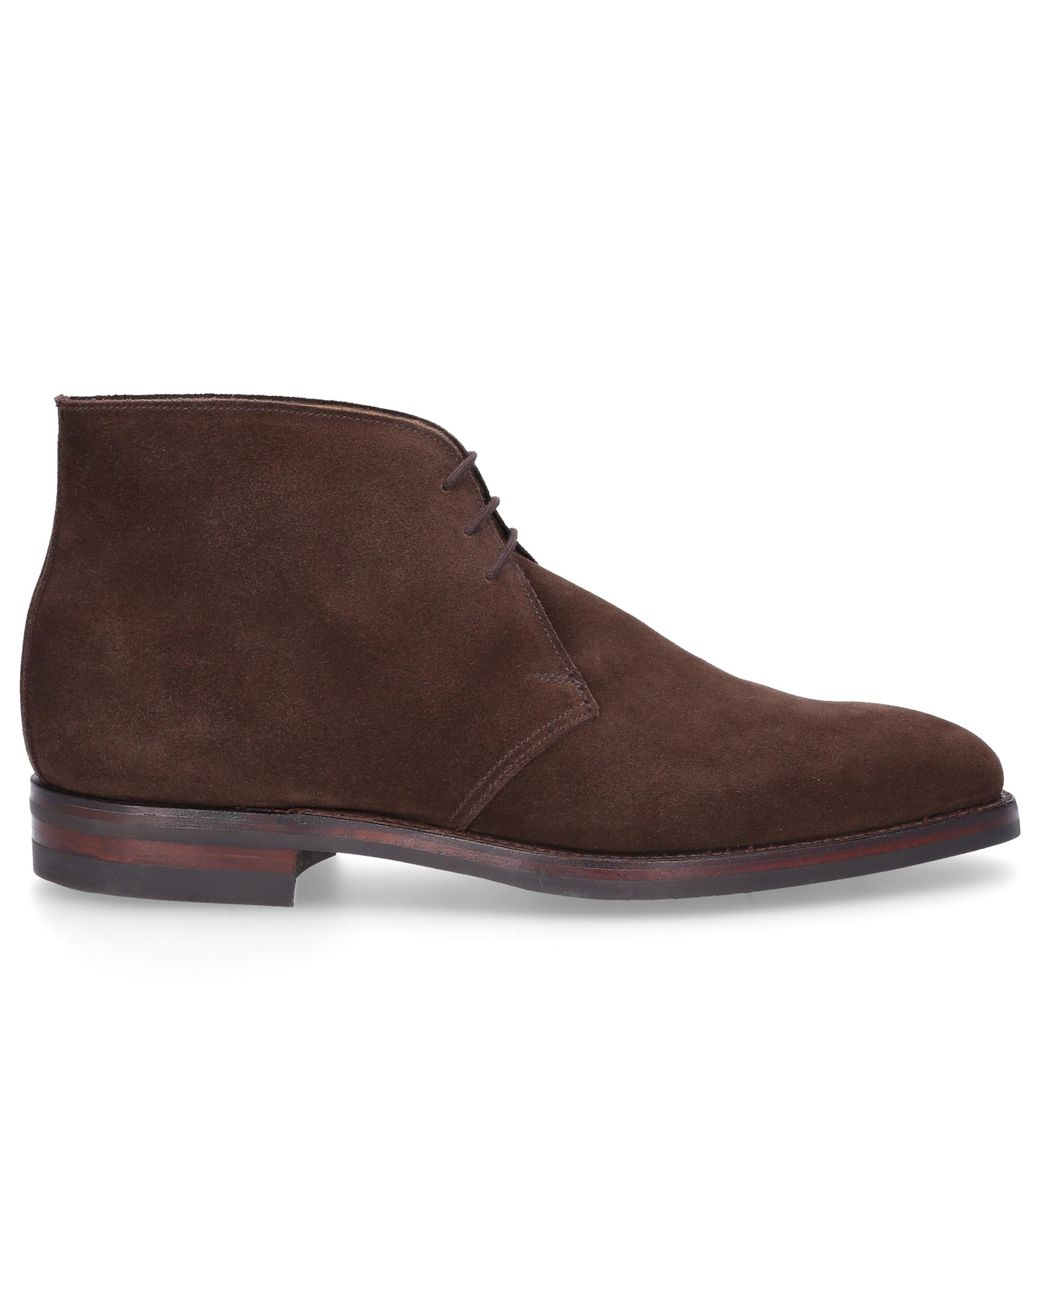 db686f0544a Men's Boots Bodmin Suede Brown